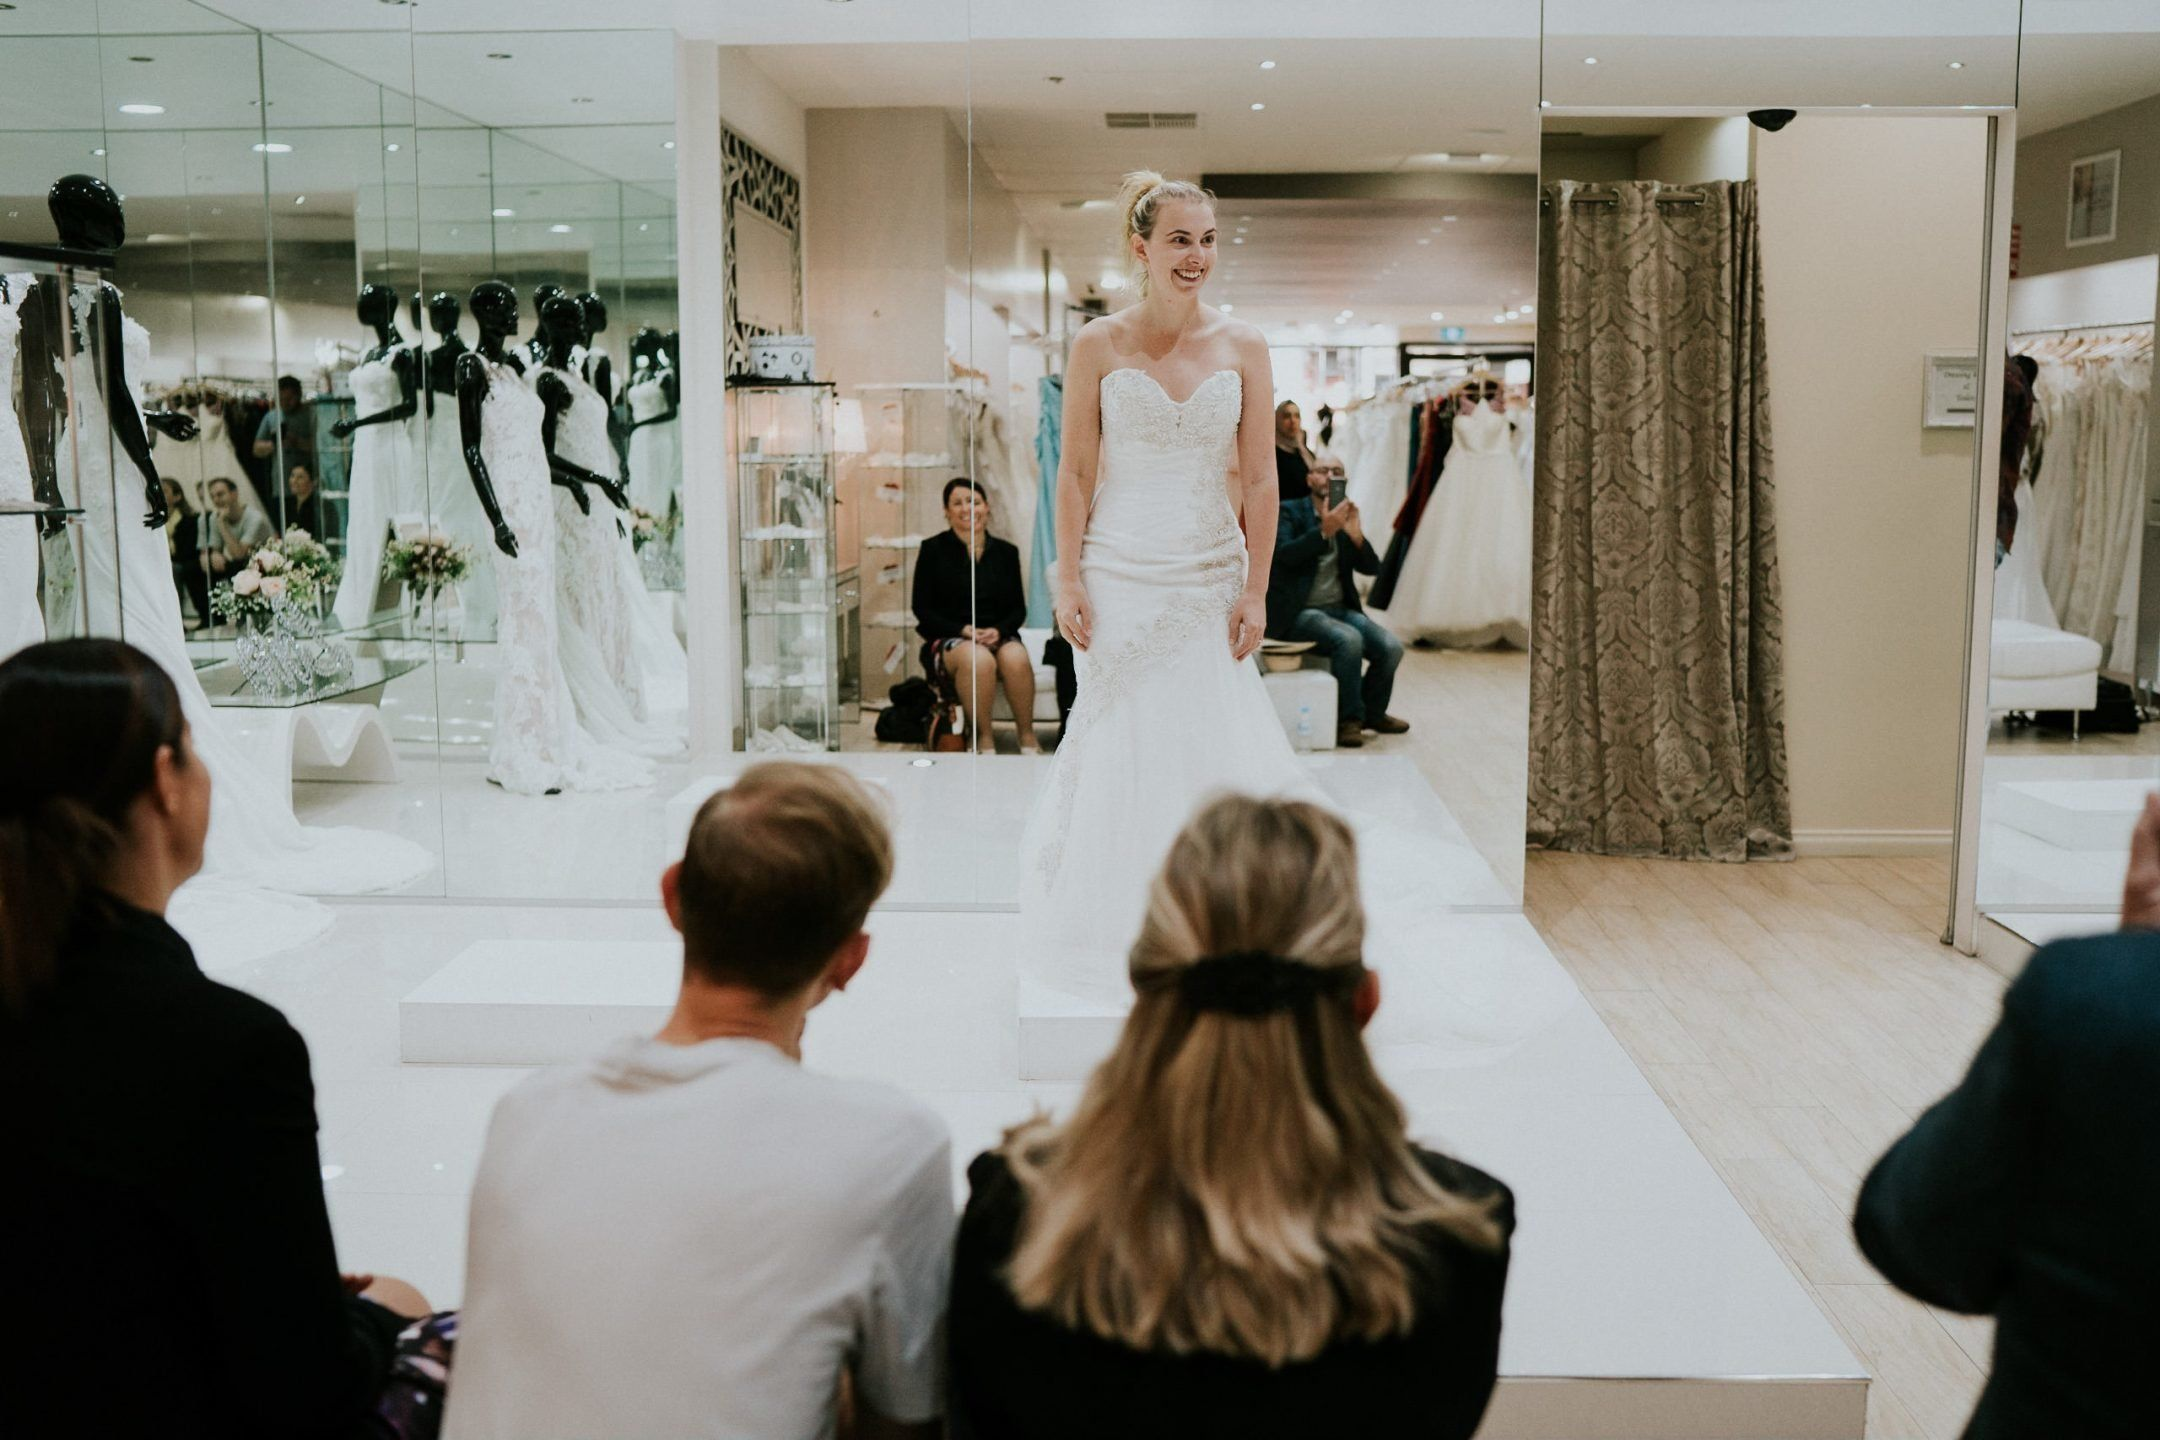 Steph Agnew smiles brightly as she wears a white strapless gown on a small platform in the bridal shop. In the foreground are the backs of her entourage.